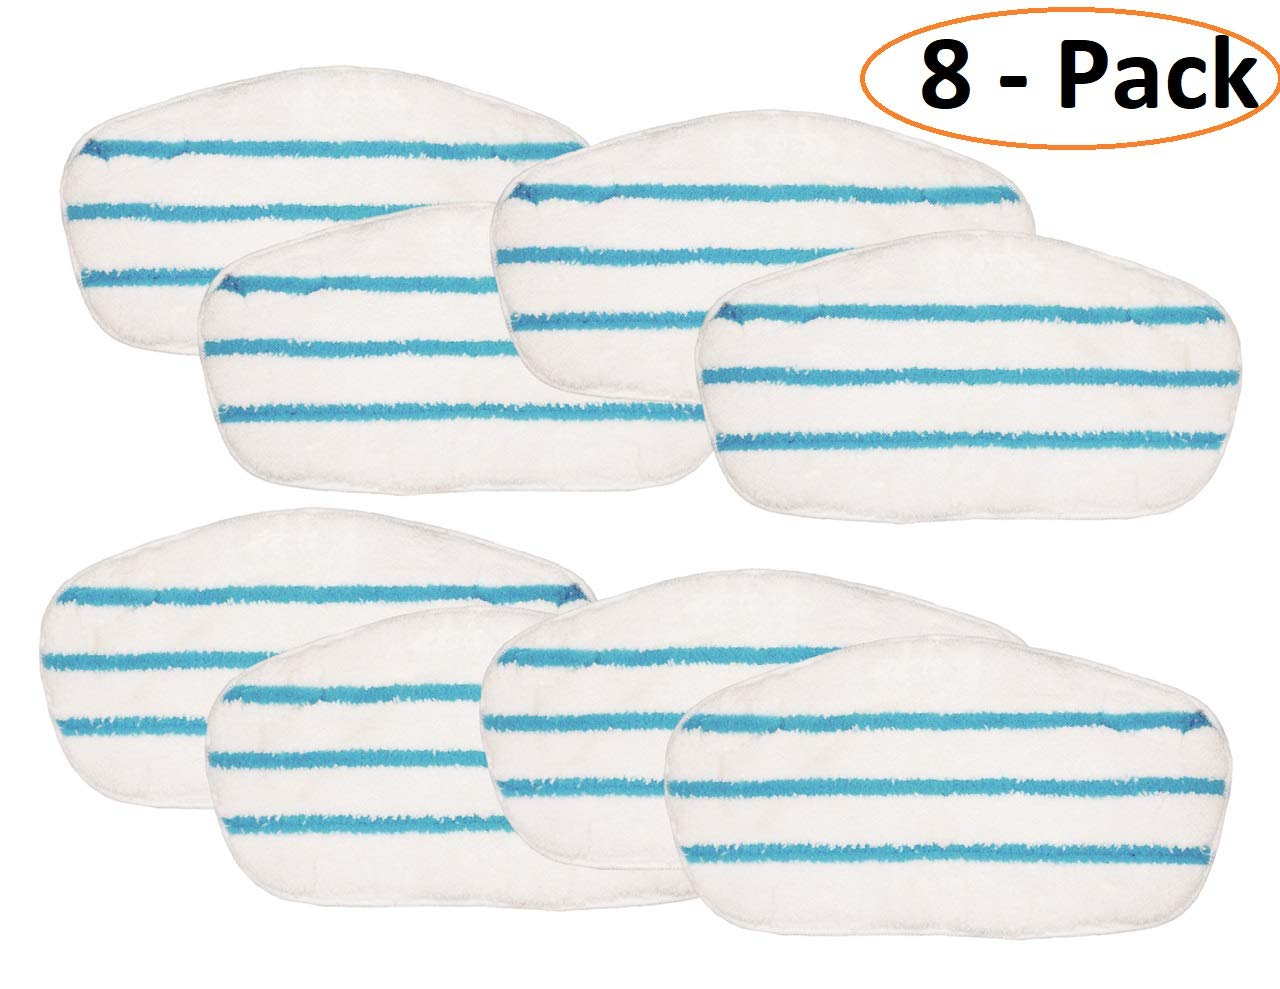 Flintar MP-P101-8 Premium Microfiber Pads Compatible with PurSteam PureSteam ThermaPro 10-in-1 Steam Mop Cleaner Replacement Steam Mop Pads Refills (8 – Pack)